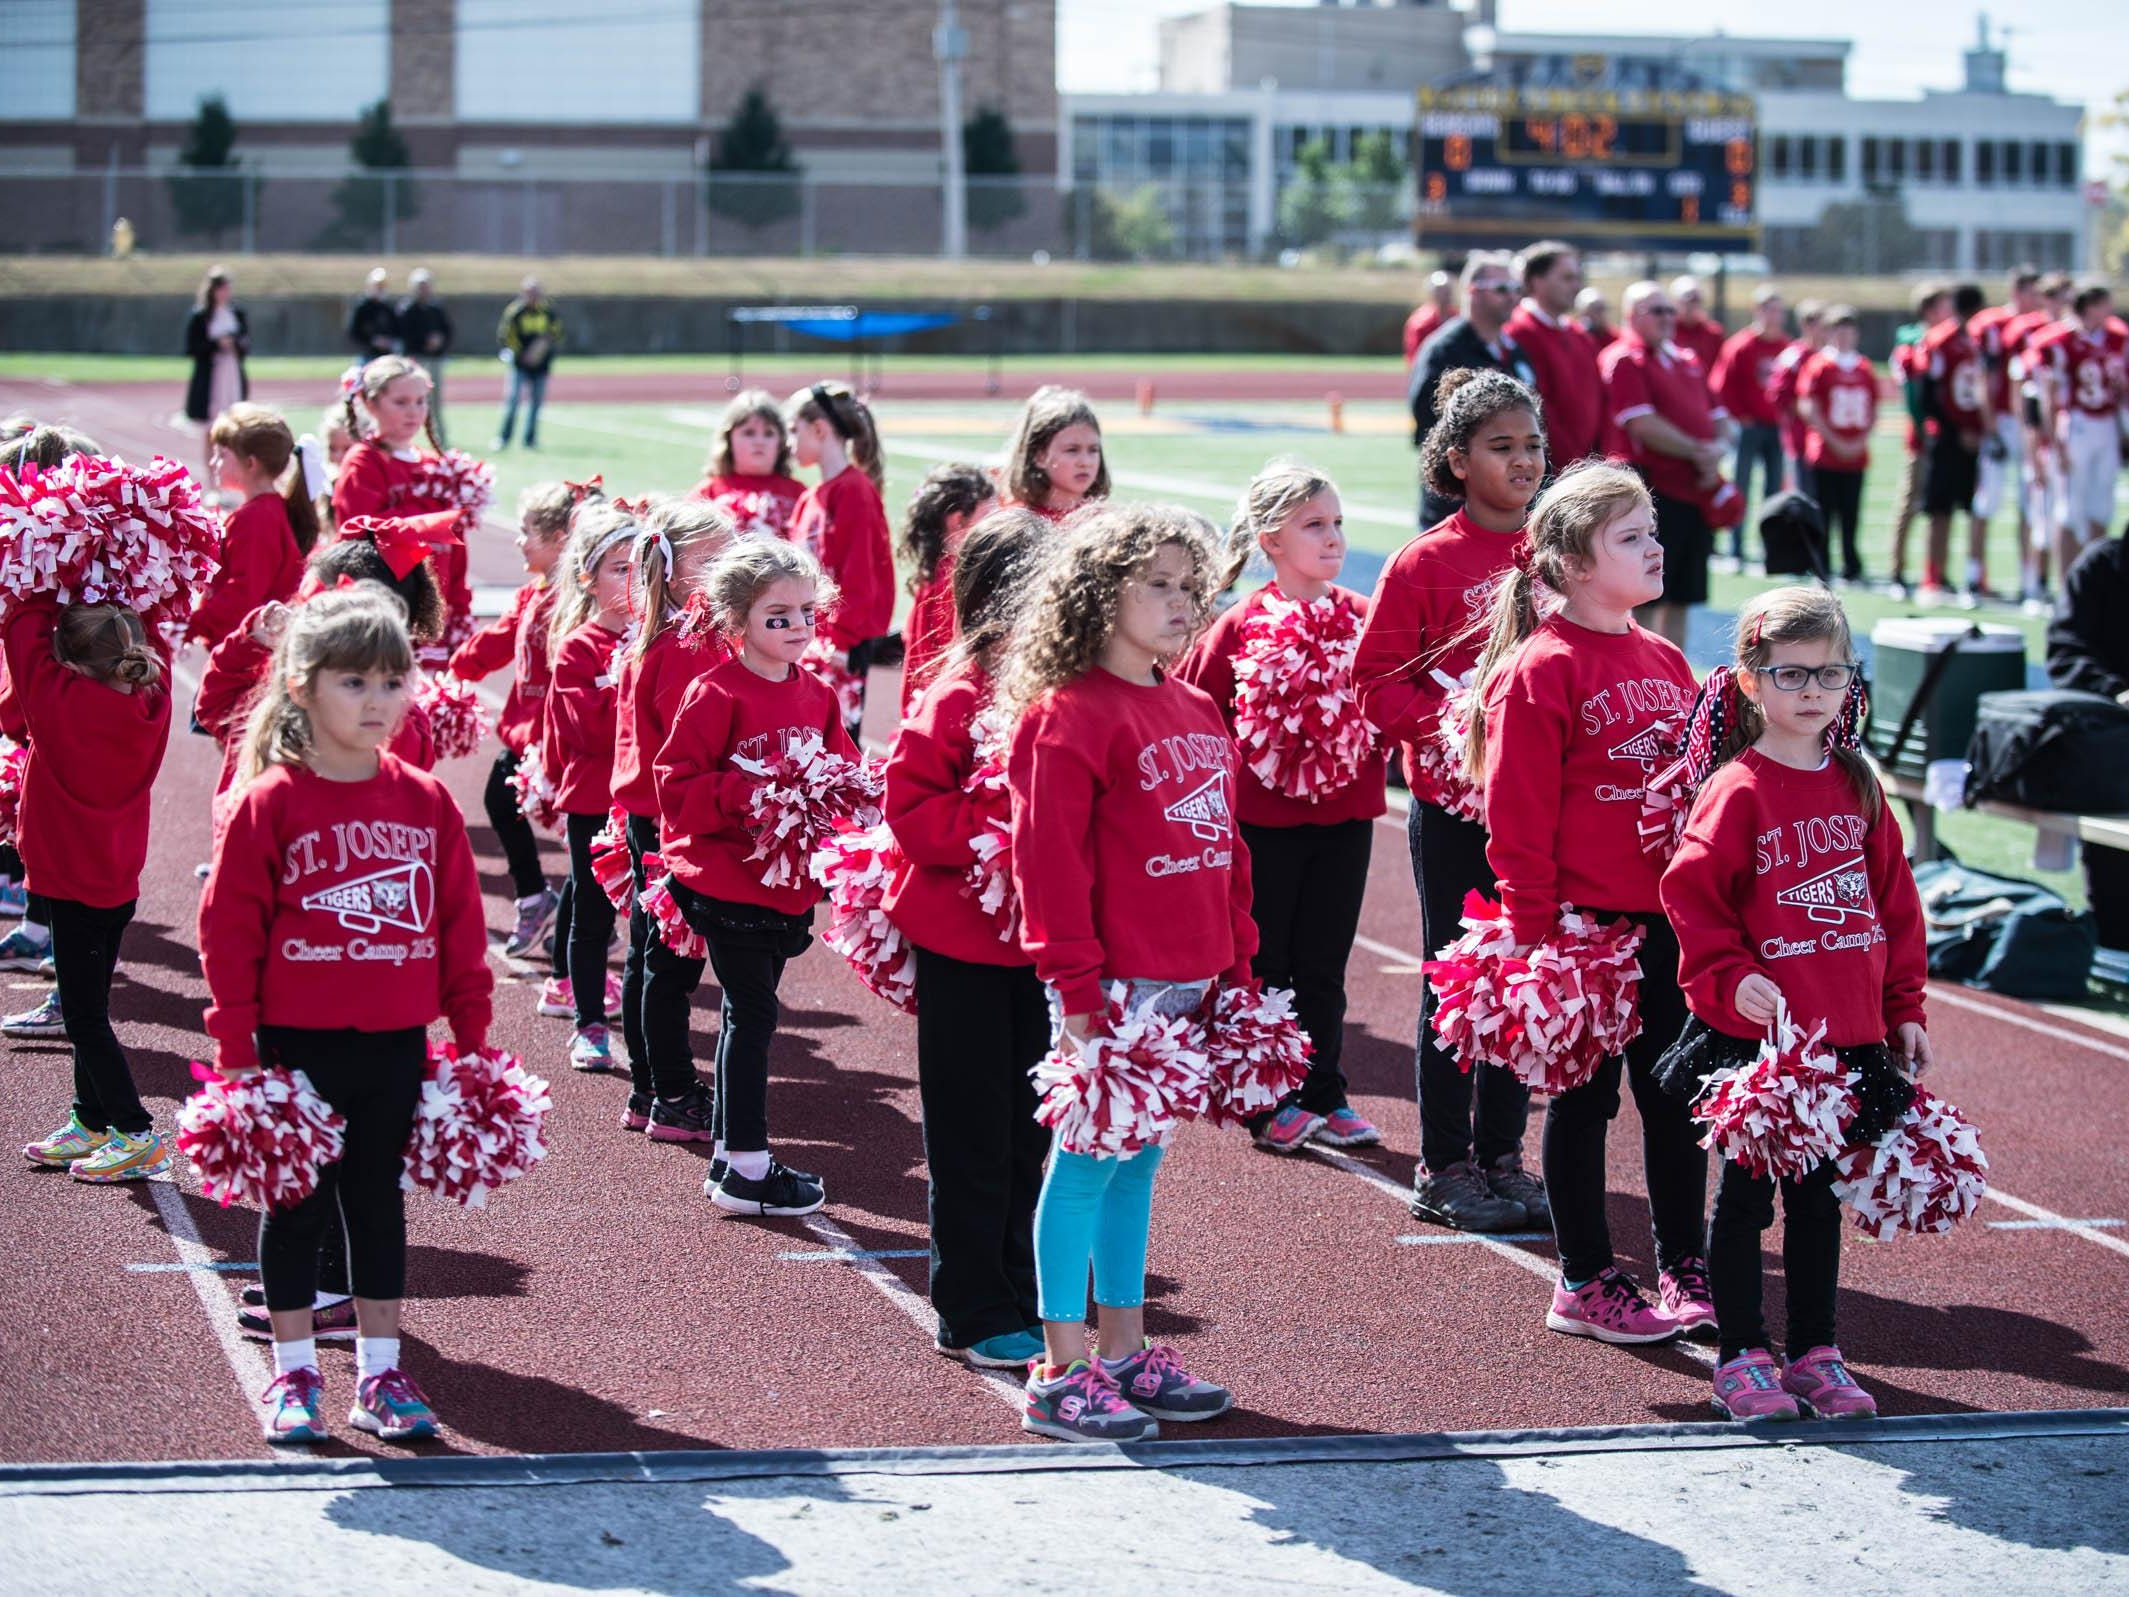 Cheerleaders from St. Joseph Elementary get the crowd fired up during St. Philip's Homecoming game on Saturday.